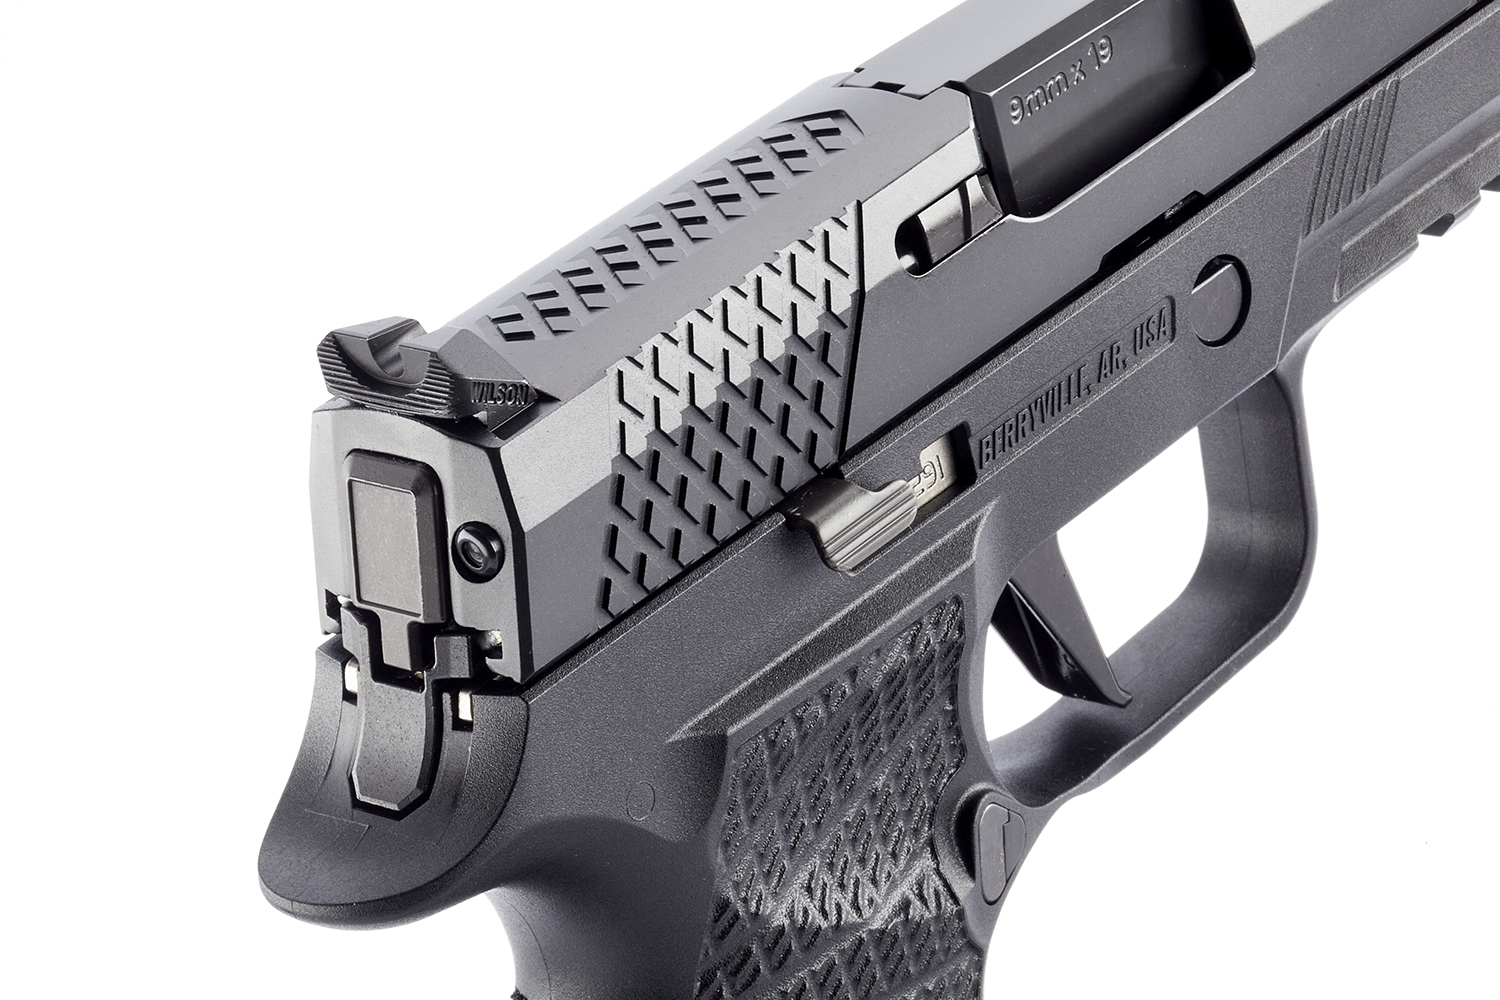 WCP320 CARRY Pistol by Wilson Combat and SIG Sauer (3)